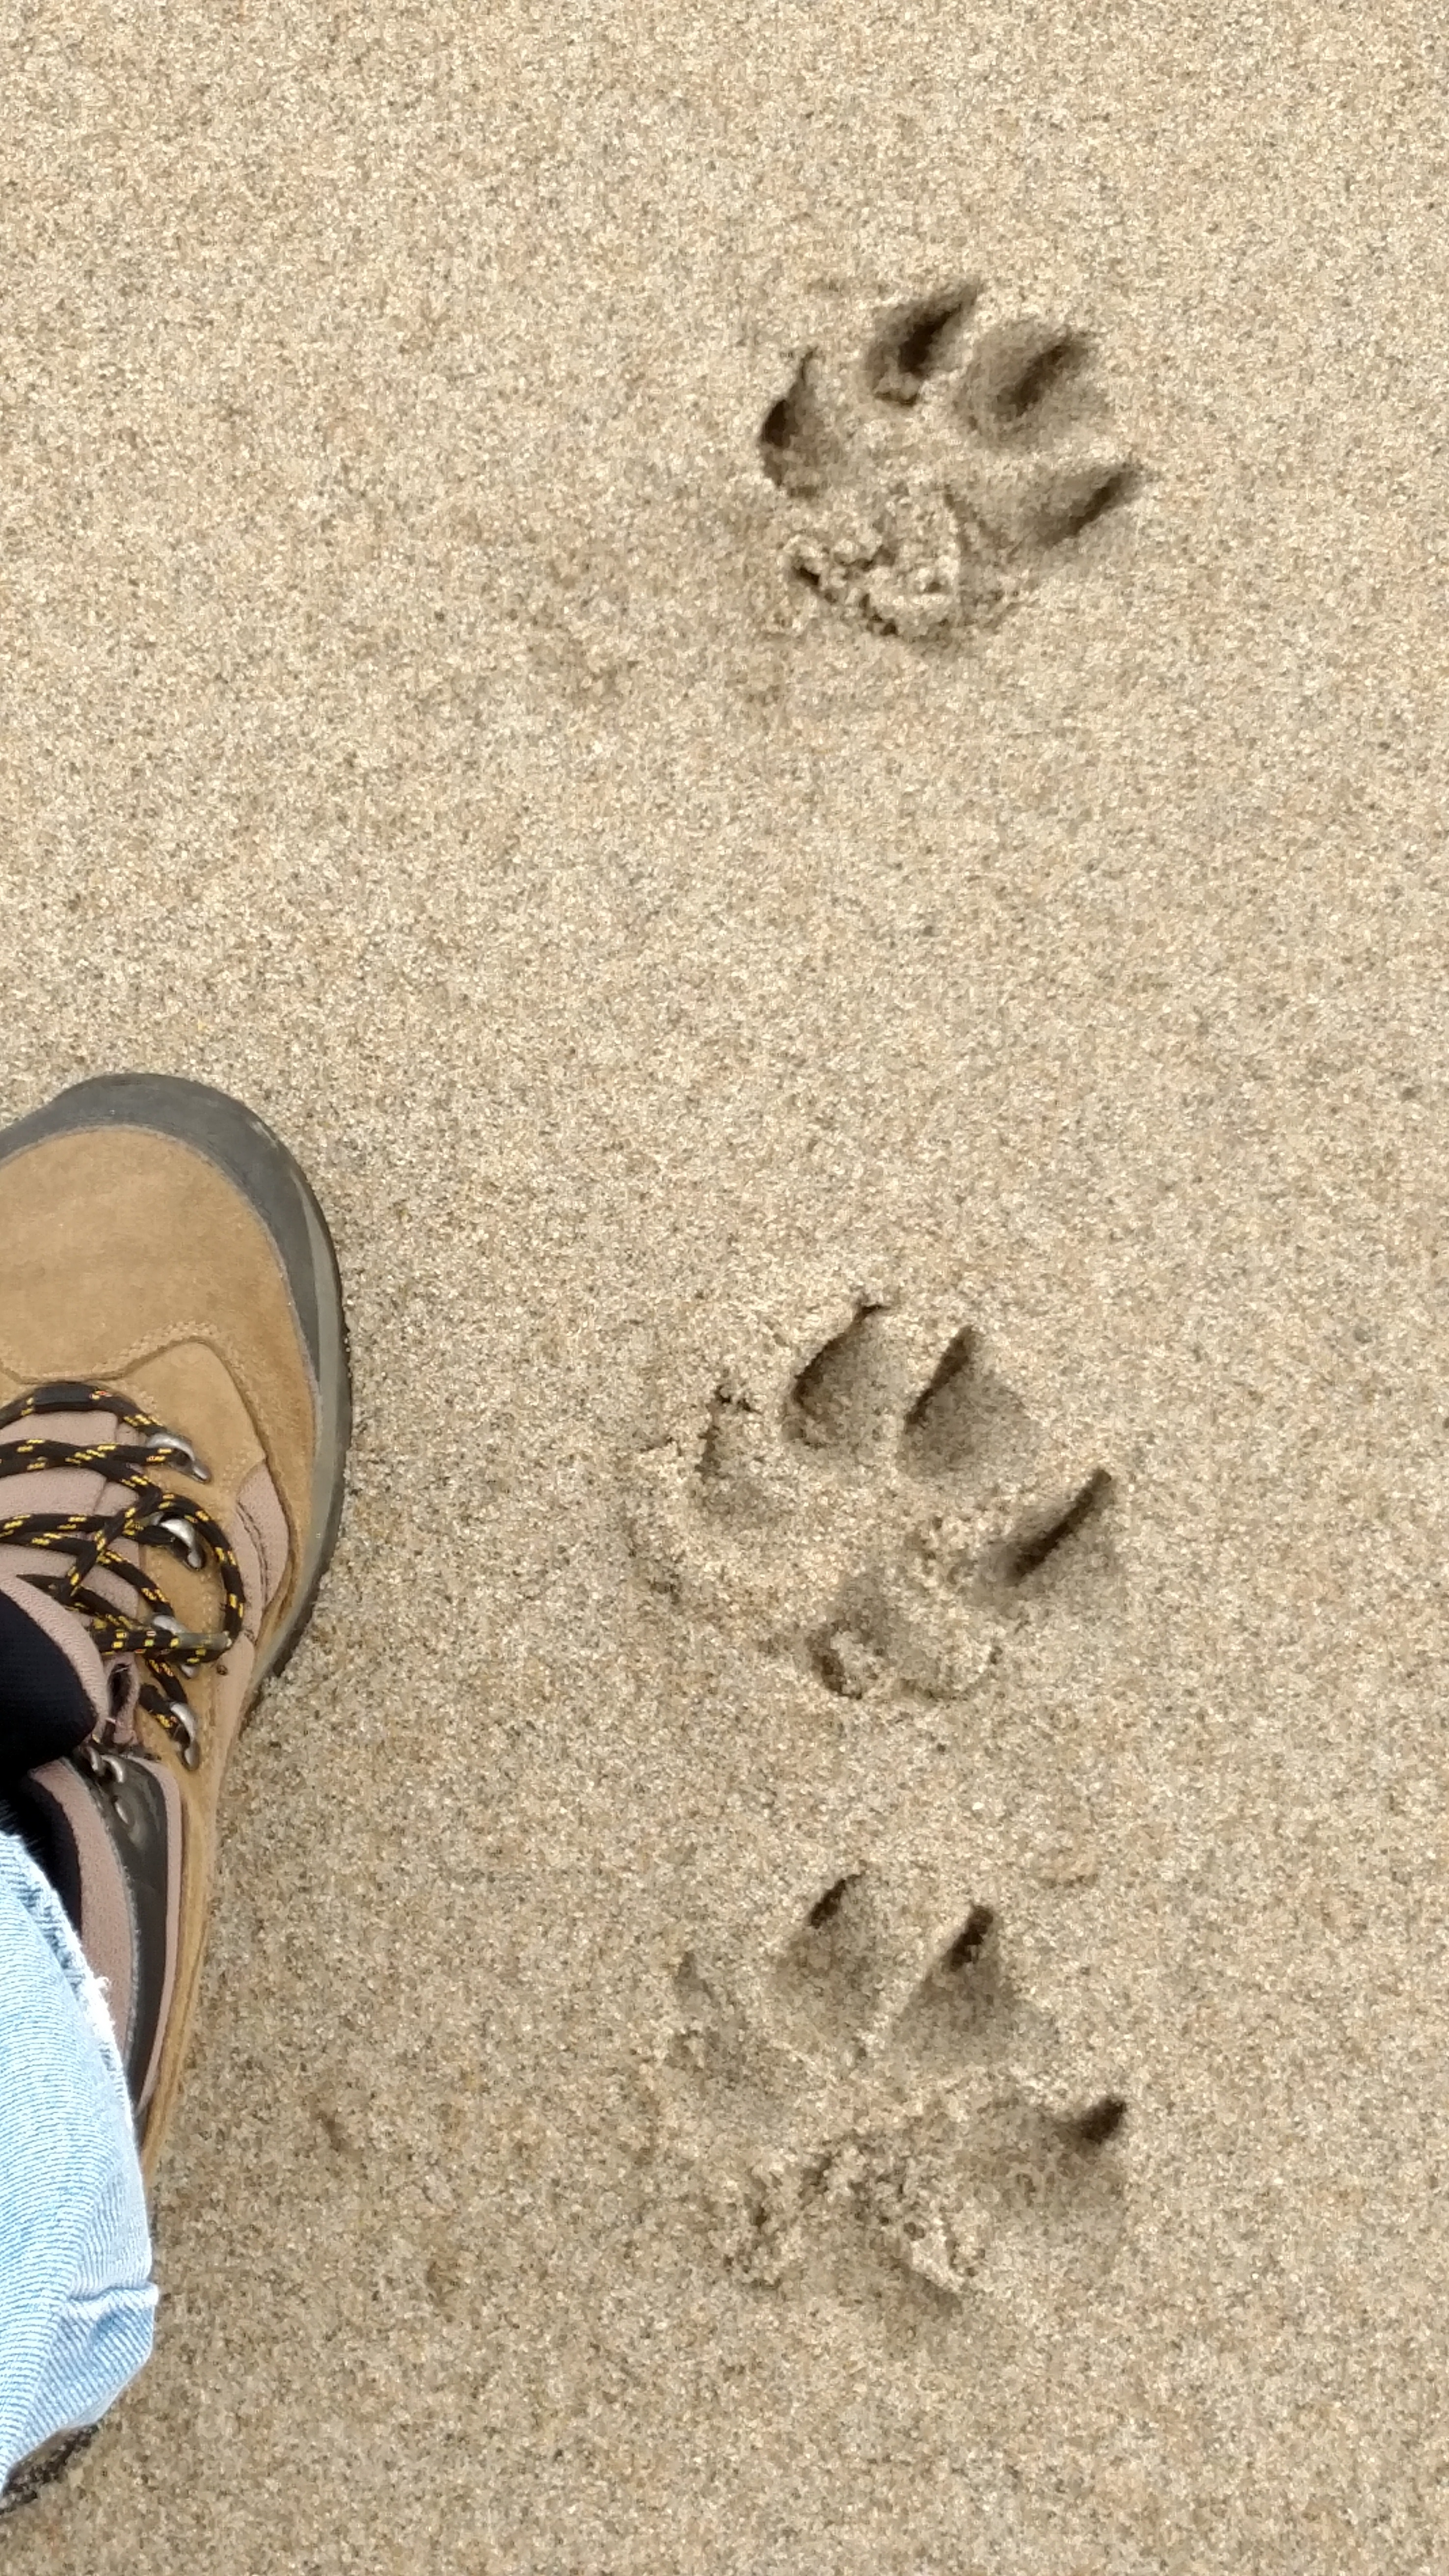 Free stock photo of Dog and Man Foot Prints on the Beach